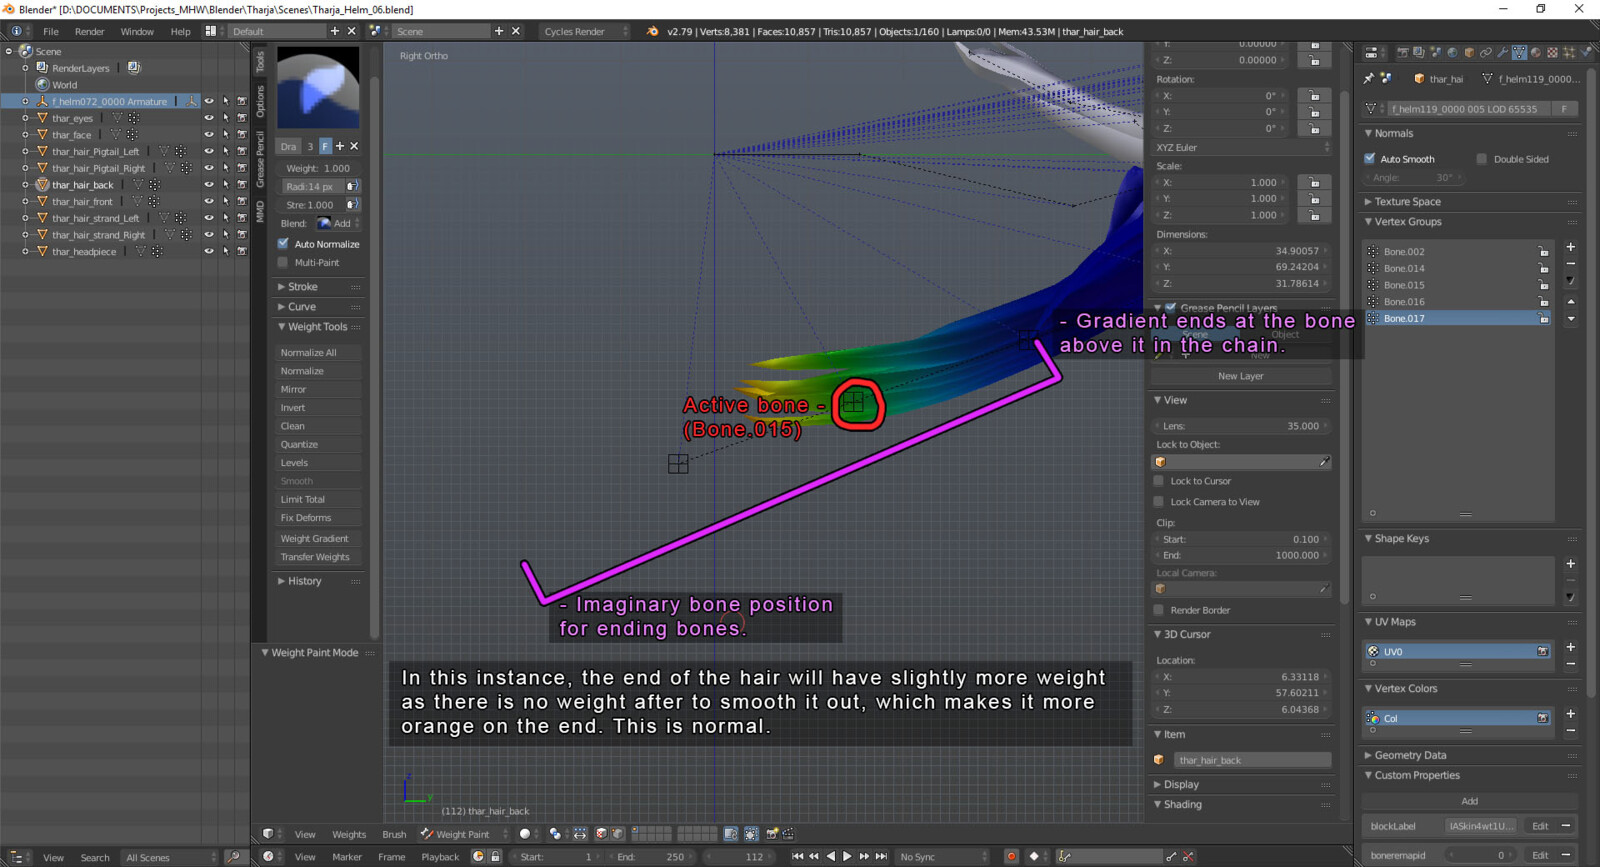 A diagram on how to get good, consistent results on weight painting gradients in Blender.